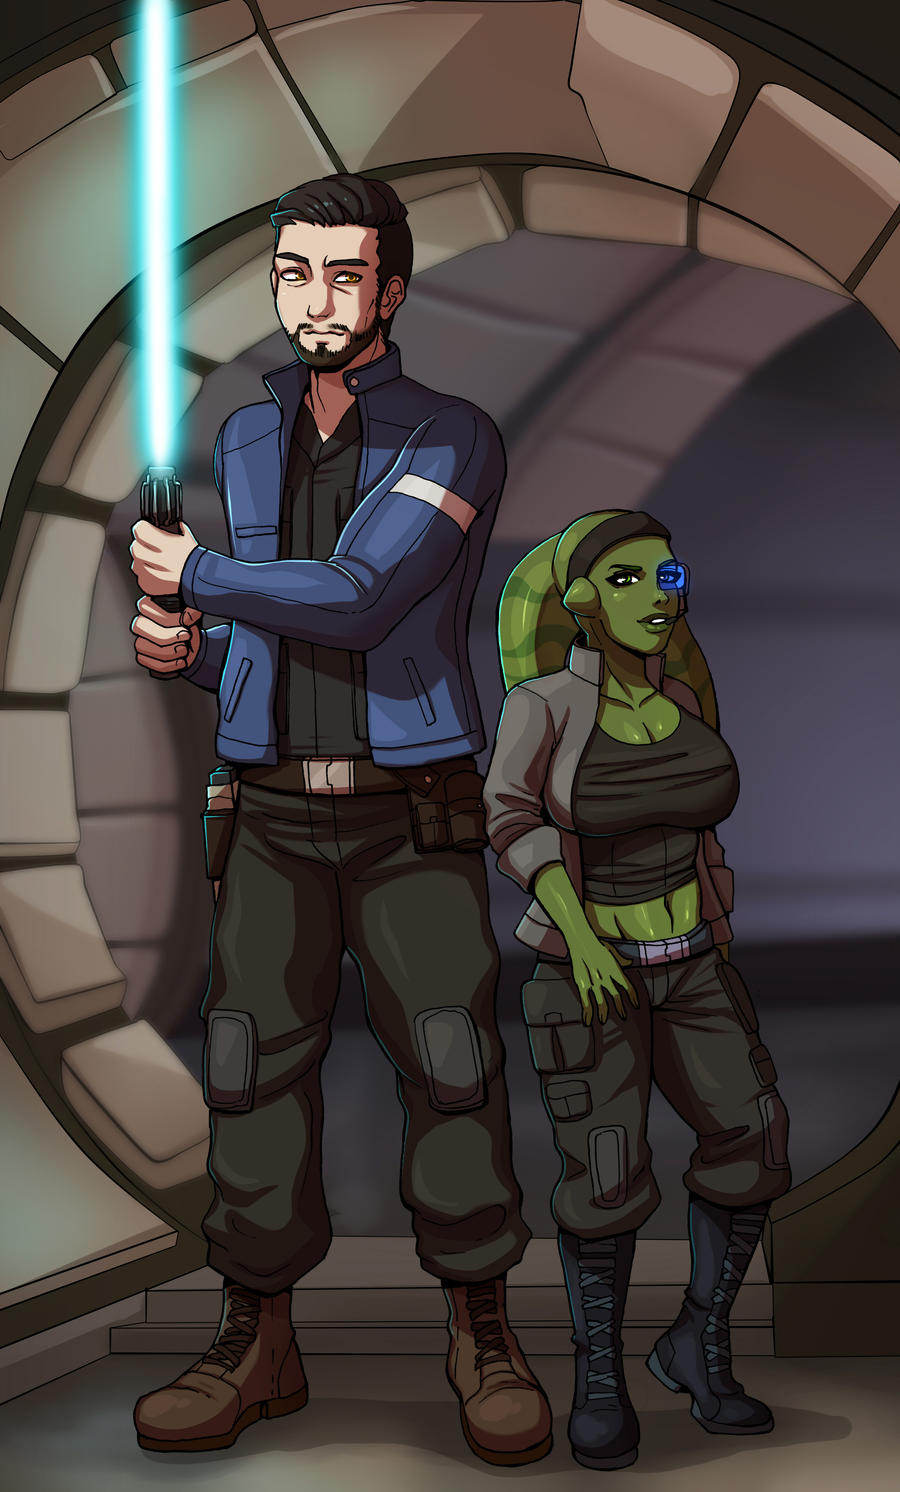 COMMISSION - Star Wars by Mafer